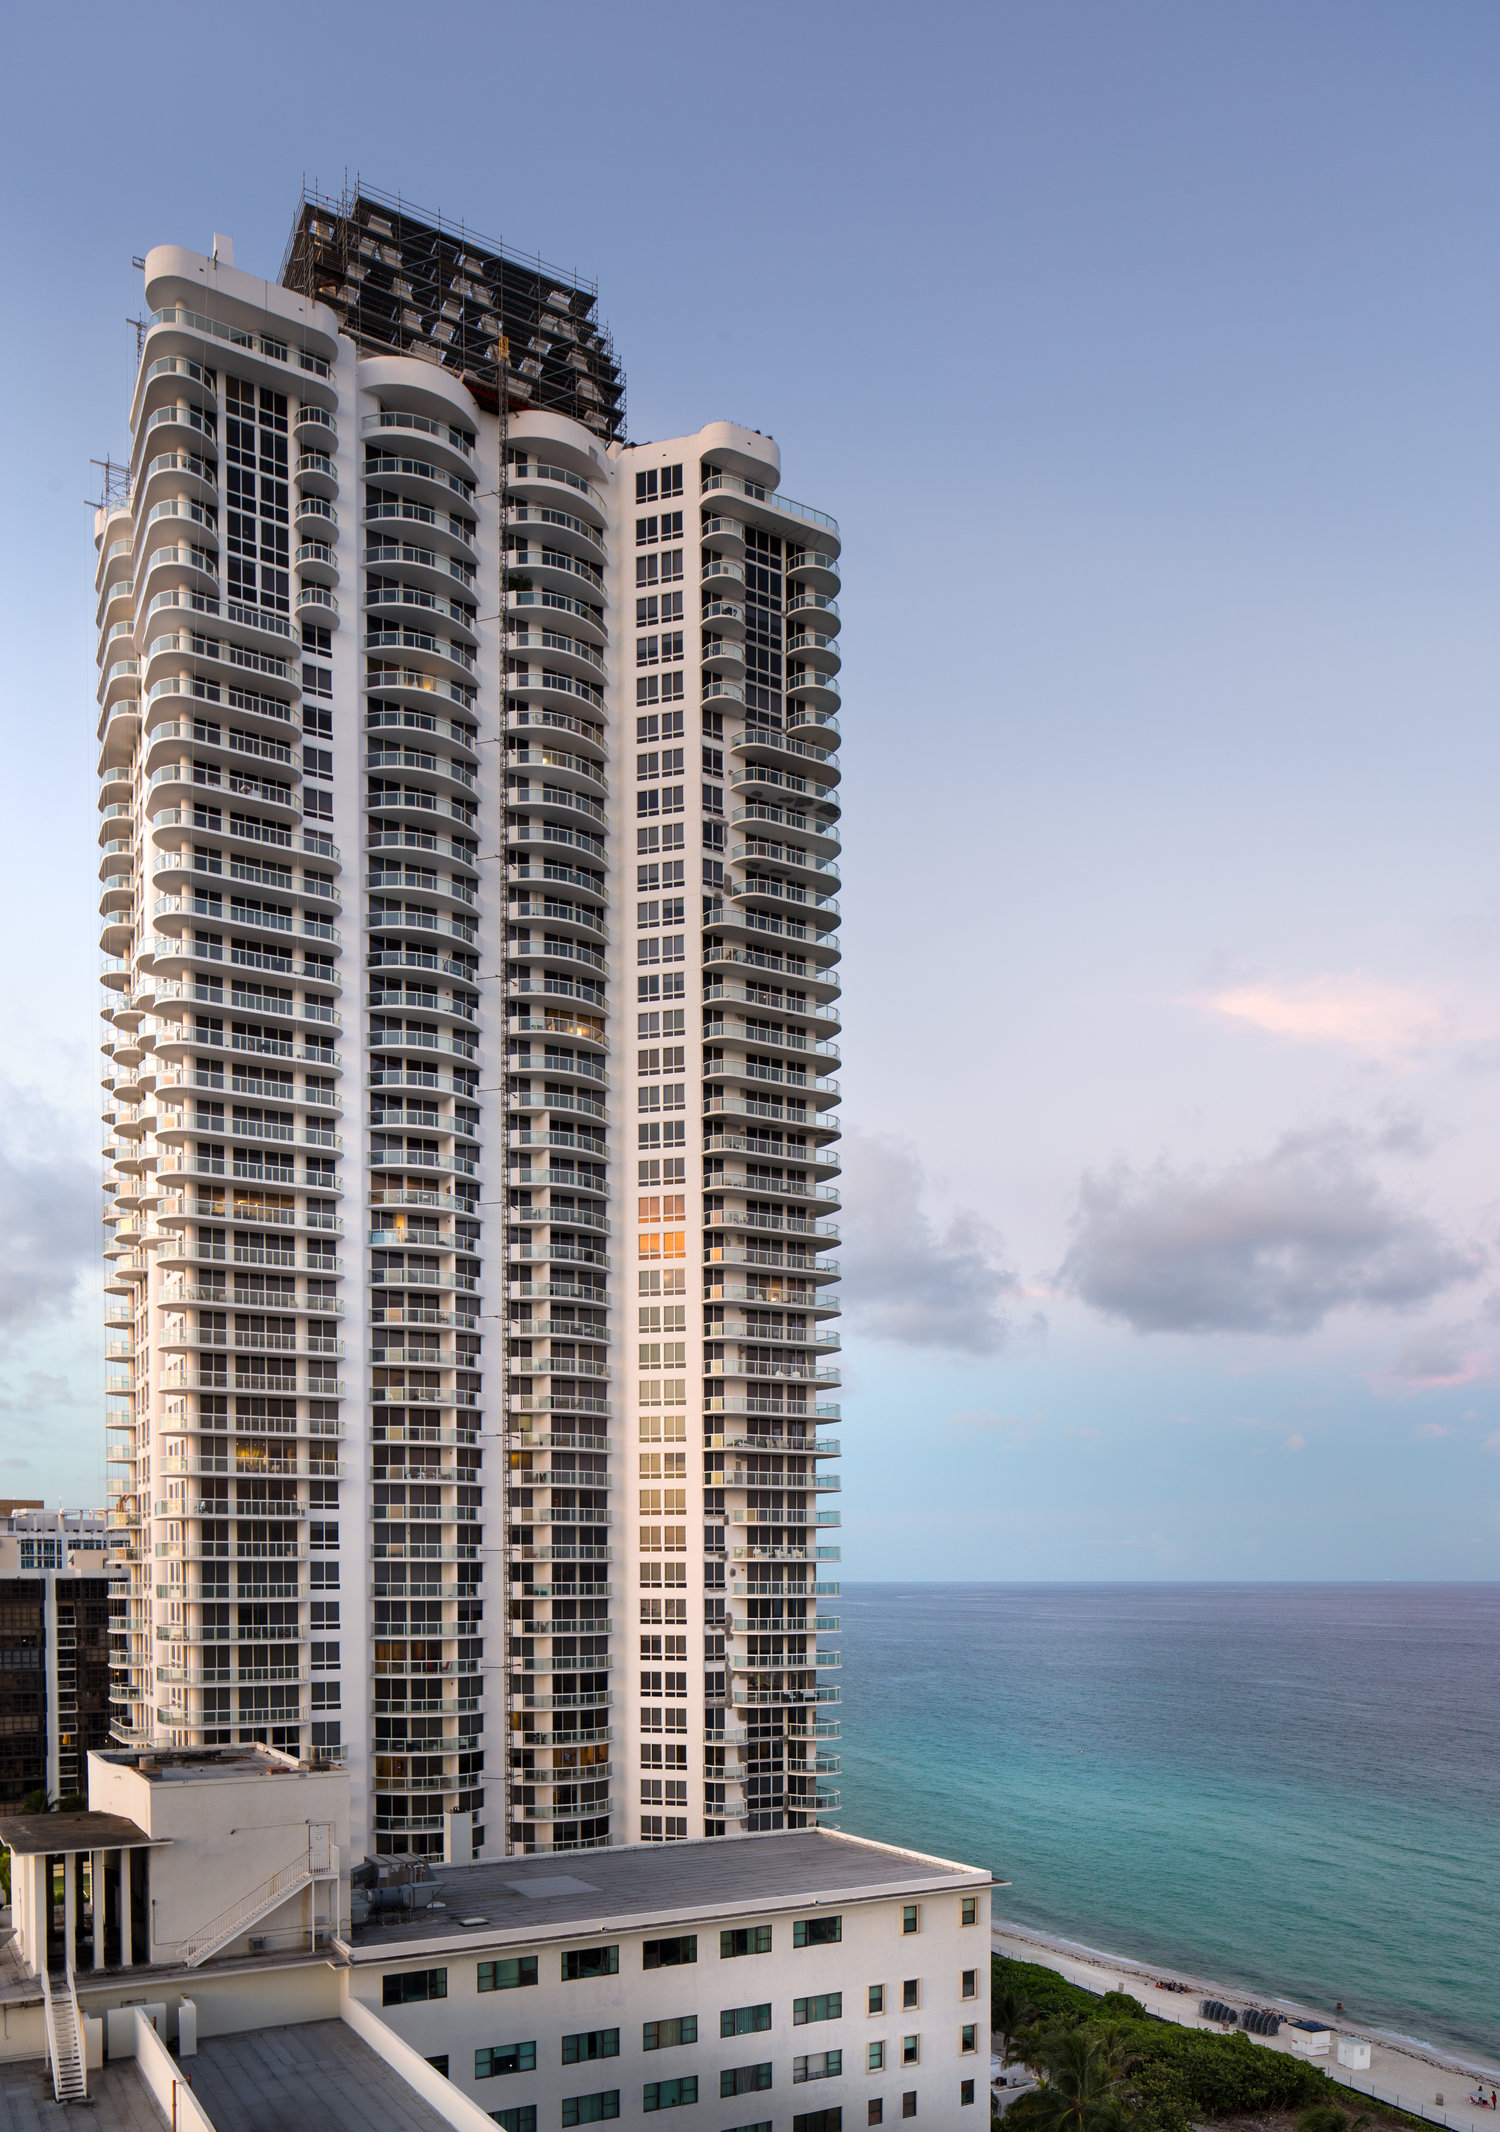 Architectural Photography - Miami Building